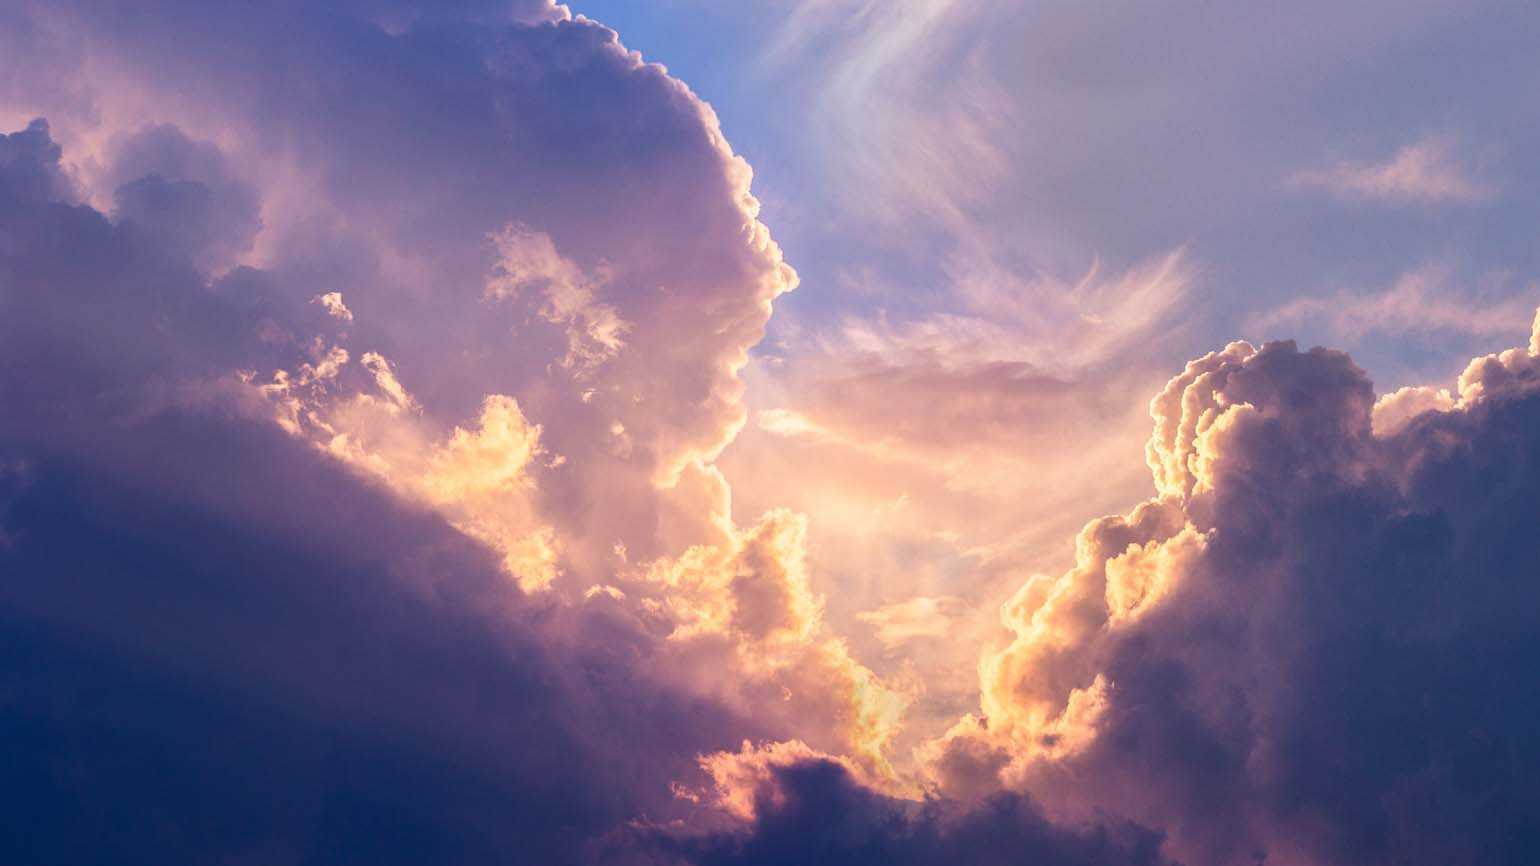 Light peeking through clouds; Getty Images